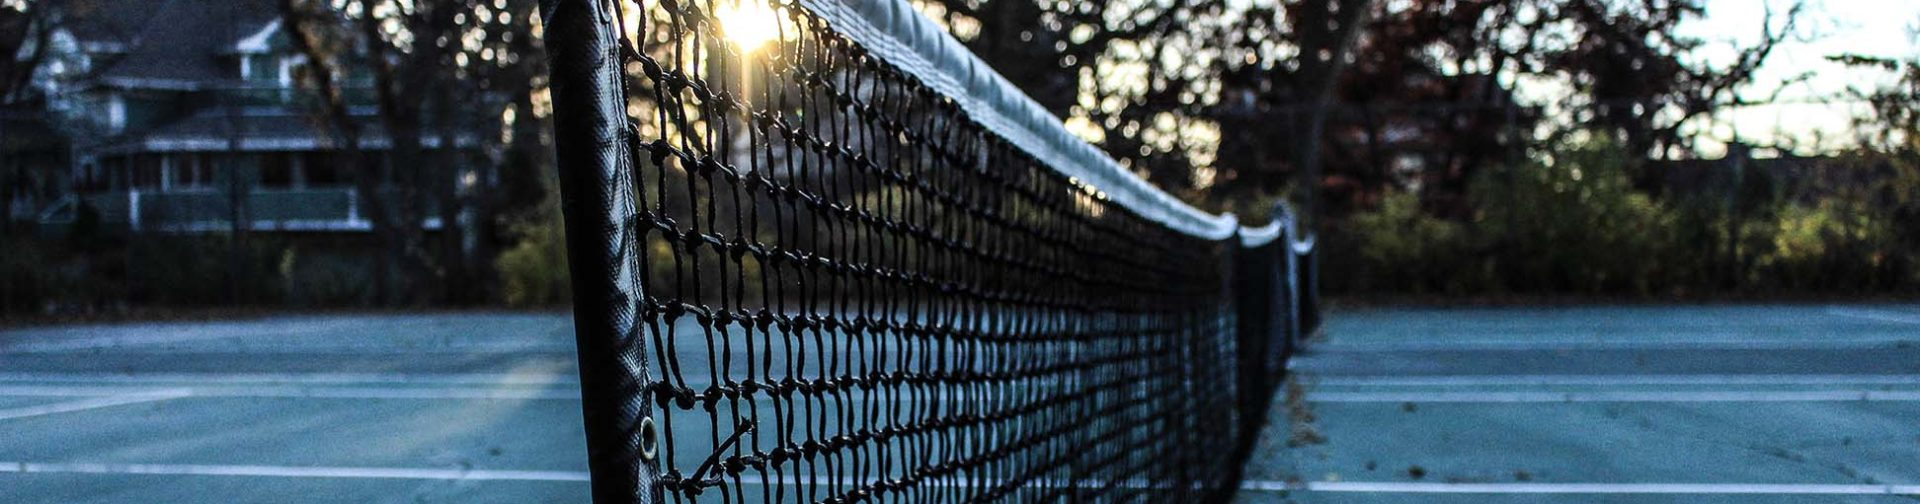 Chattanooga Tennis Association